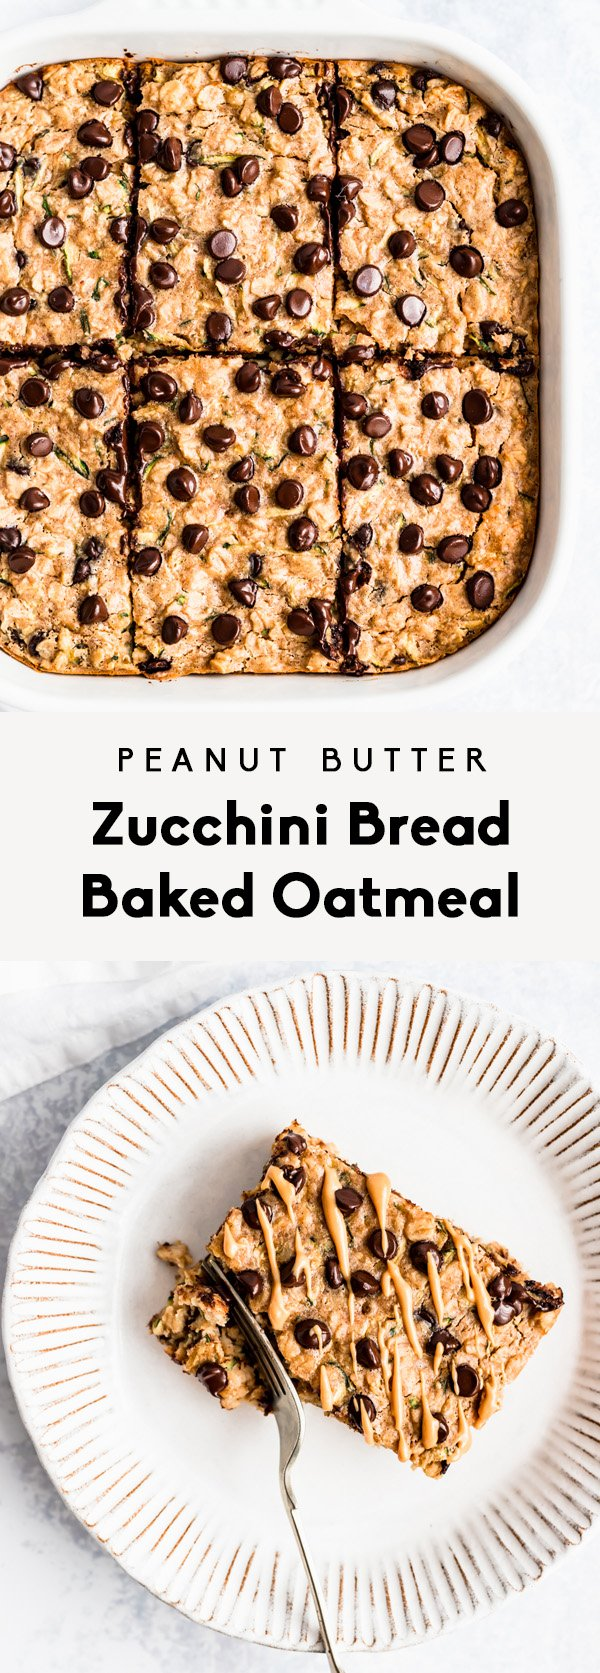 collage of peanut butter zucchini bread baked oatmeal in a baking dish and on a plate